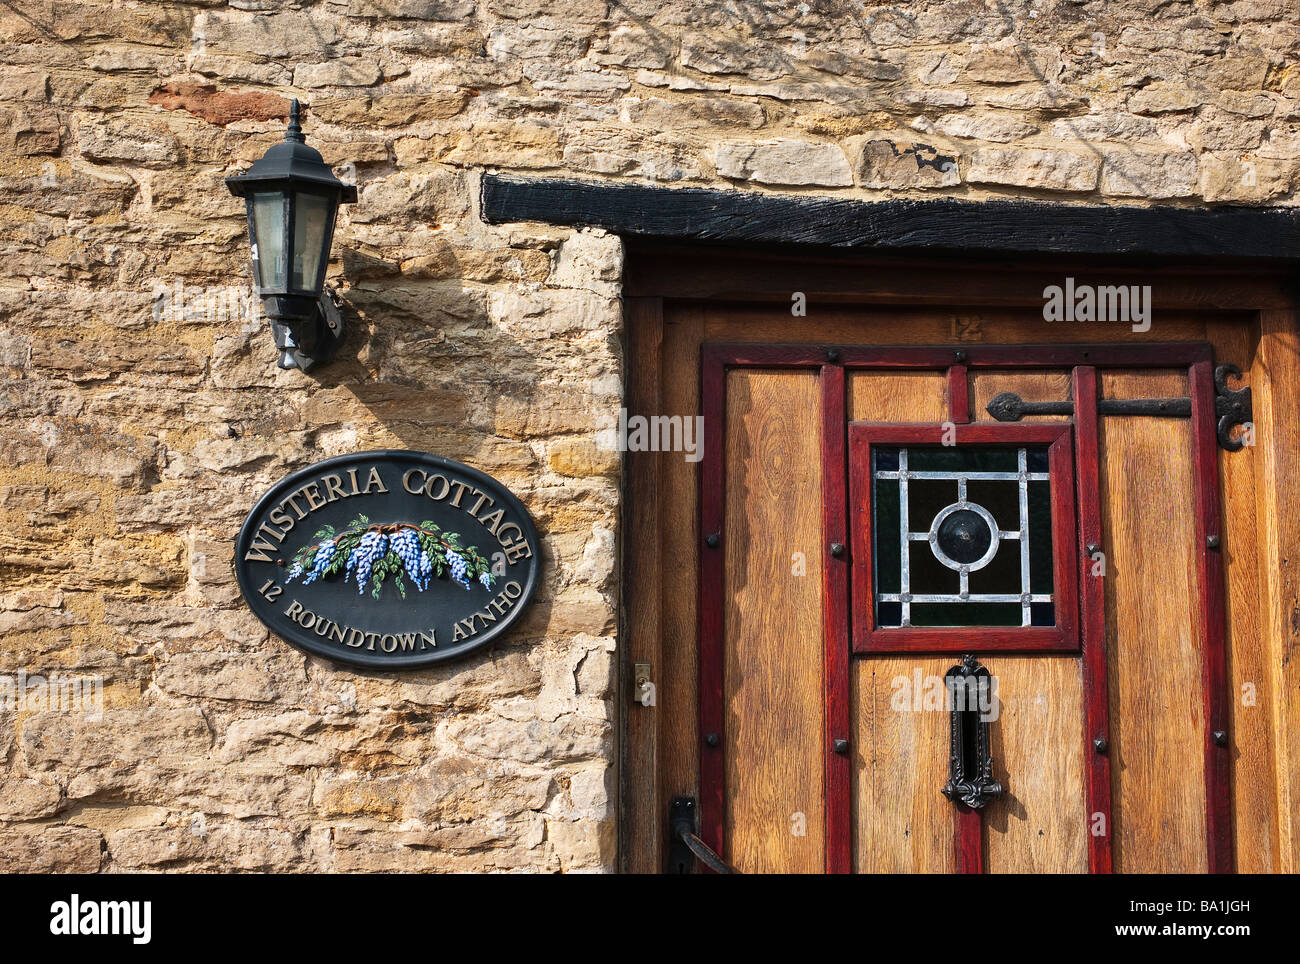 Door Name Plate High Resolution Stock Photography And Images Alamy